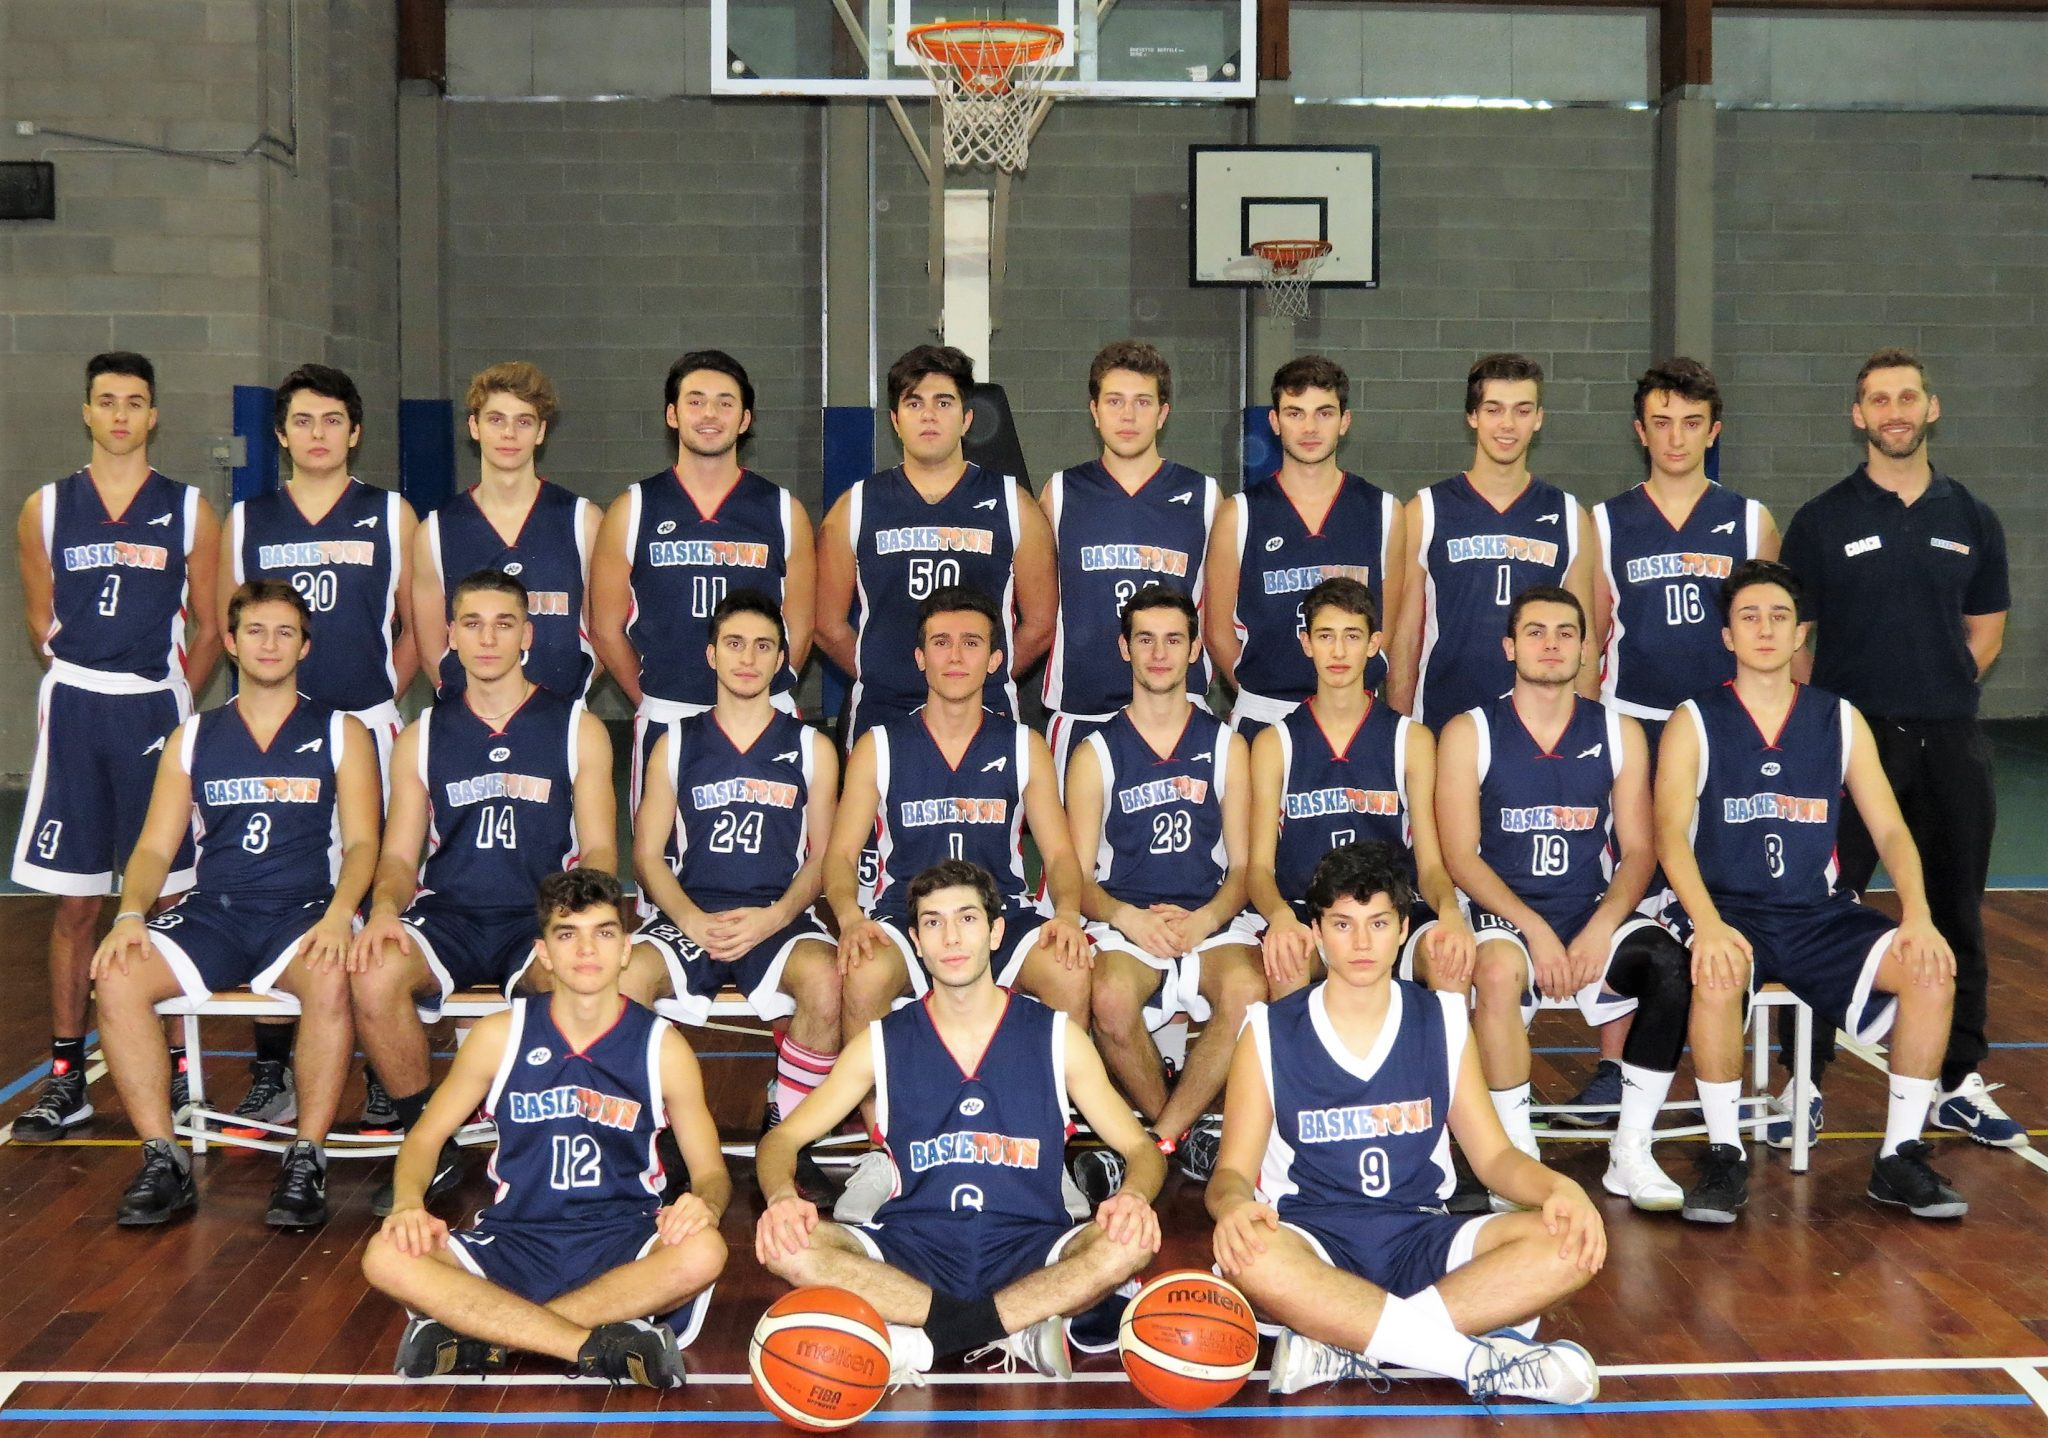 Uisp Basket Milano Calendario.Under 19 Uisp Basketown Asd